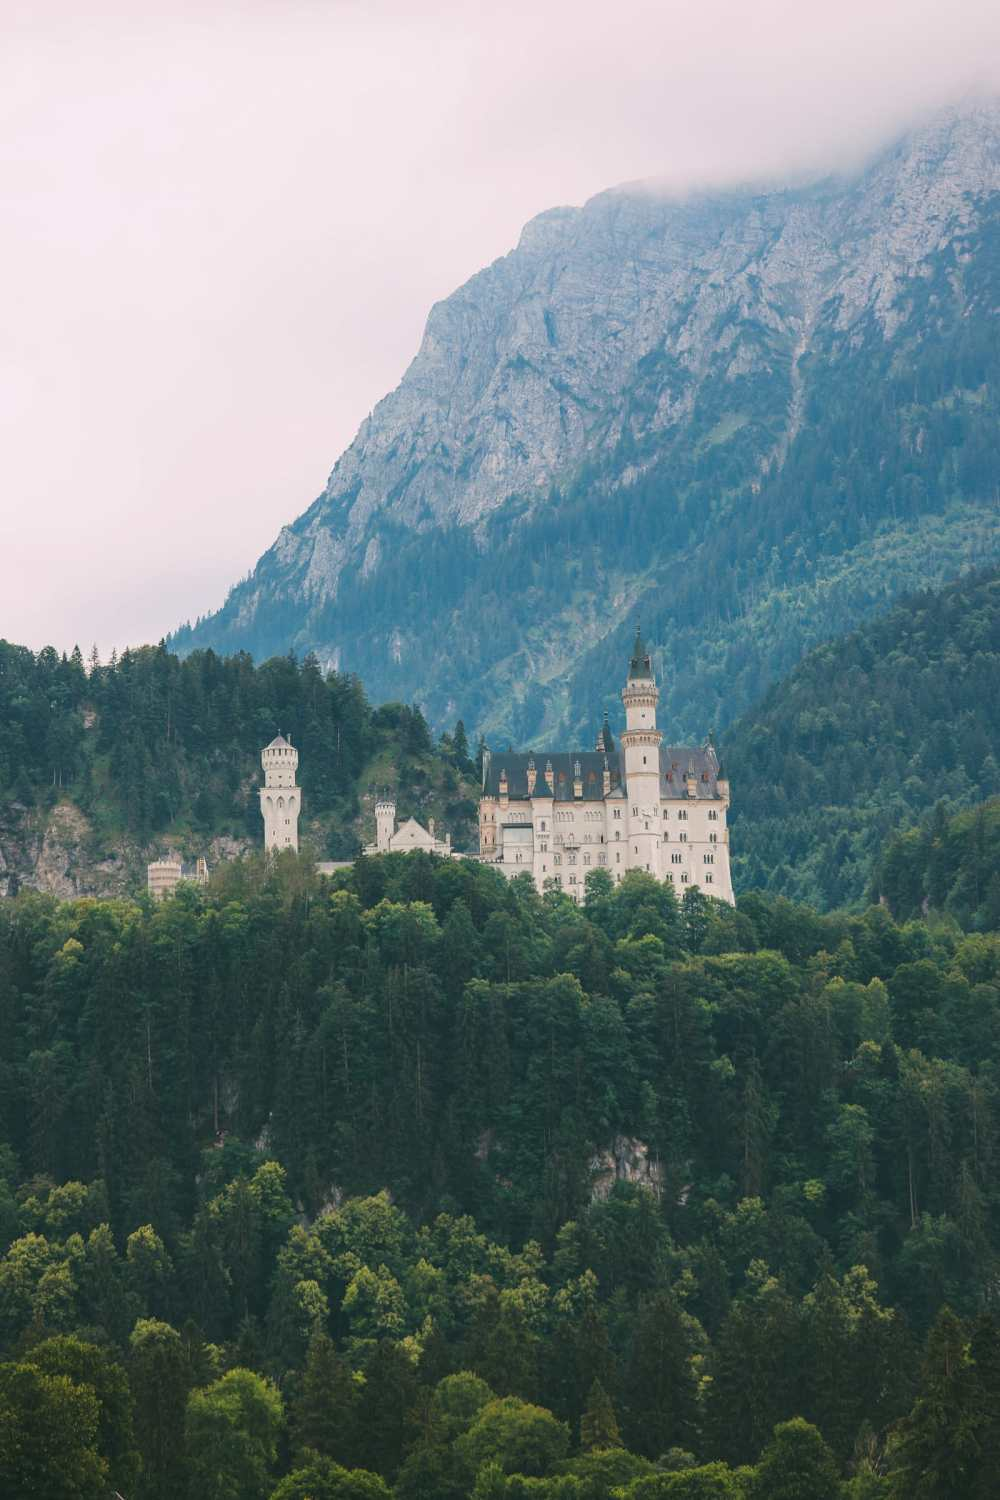 Neuschwanstein Castle - The Most Beautiful Fairytale Castle In Germany You Definitely Have To Visit! (2)